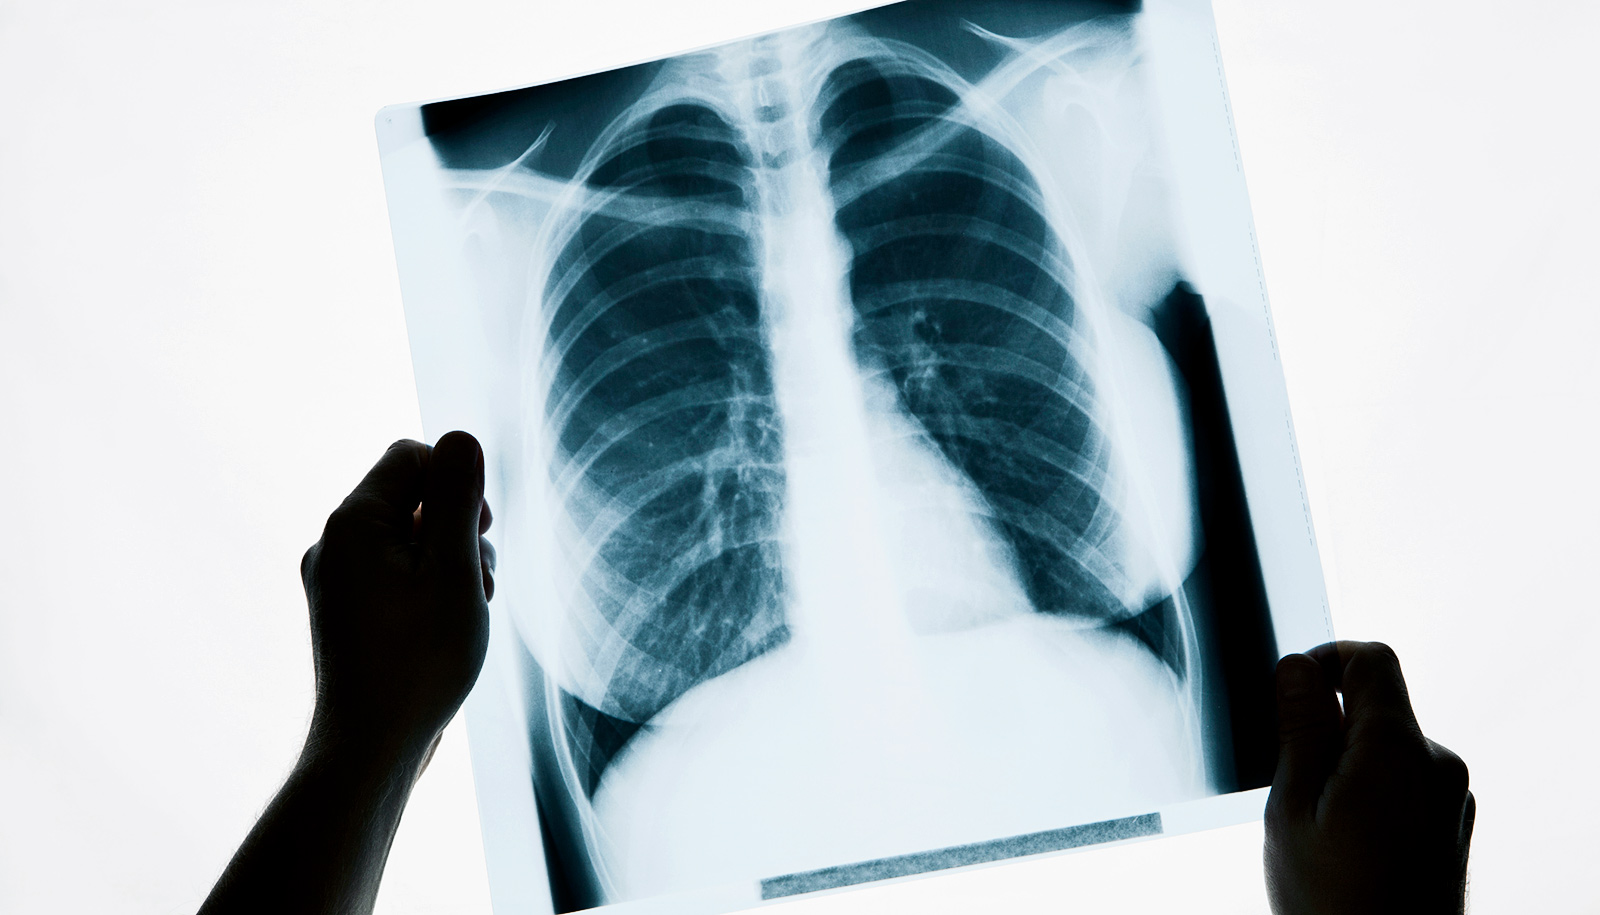 Algorithm Outdoes Radiologists At Spotting Pneumonia In X